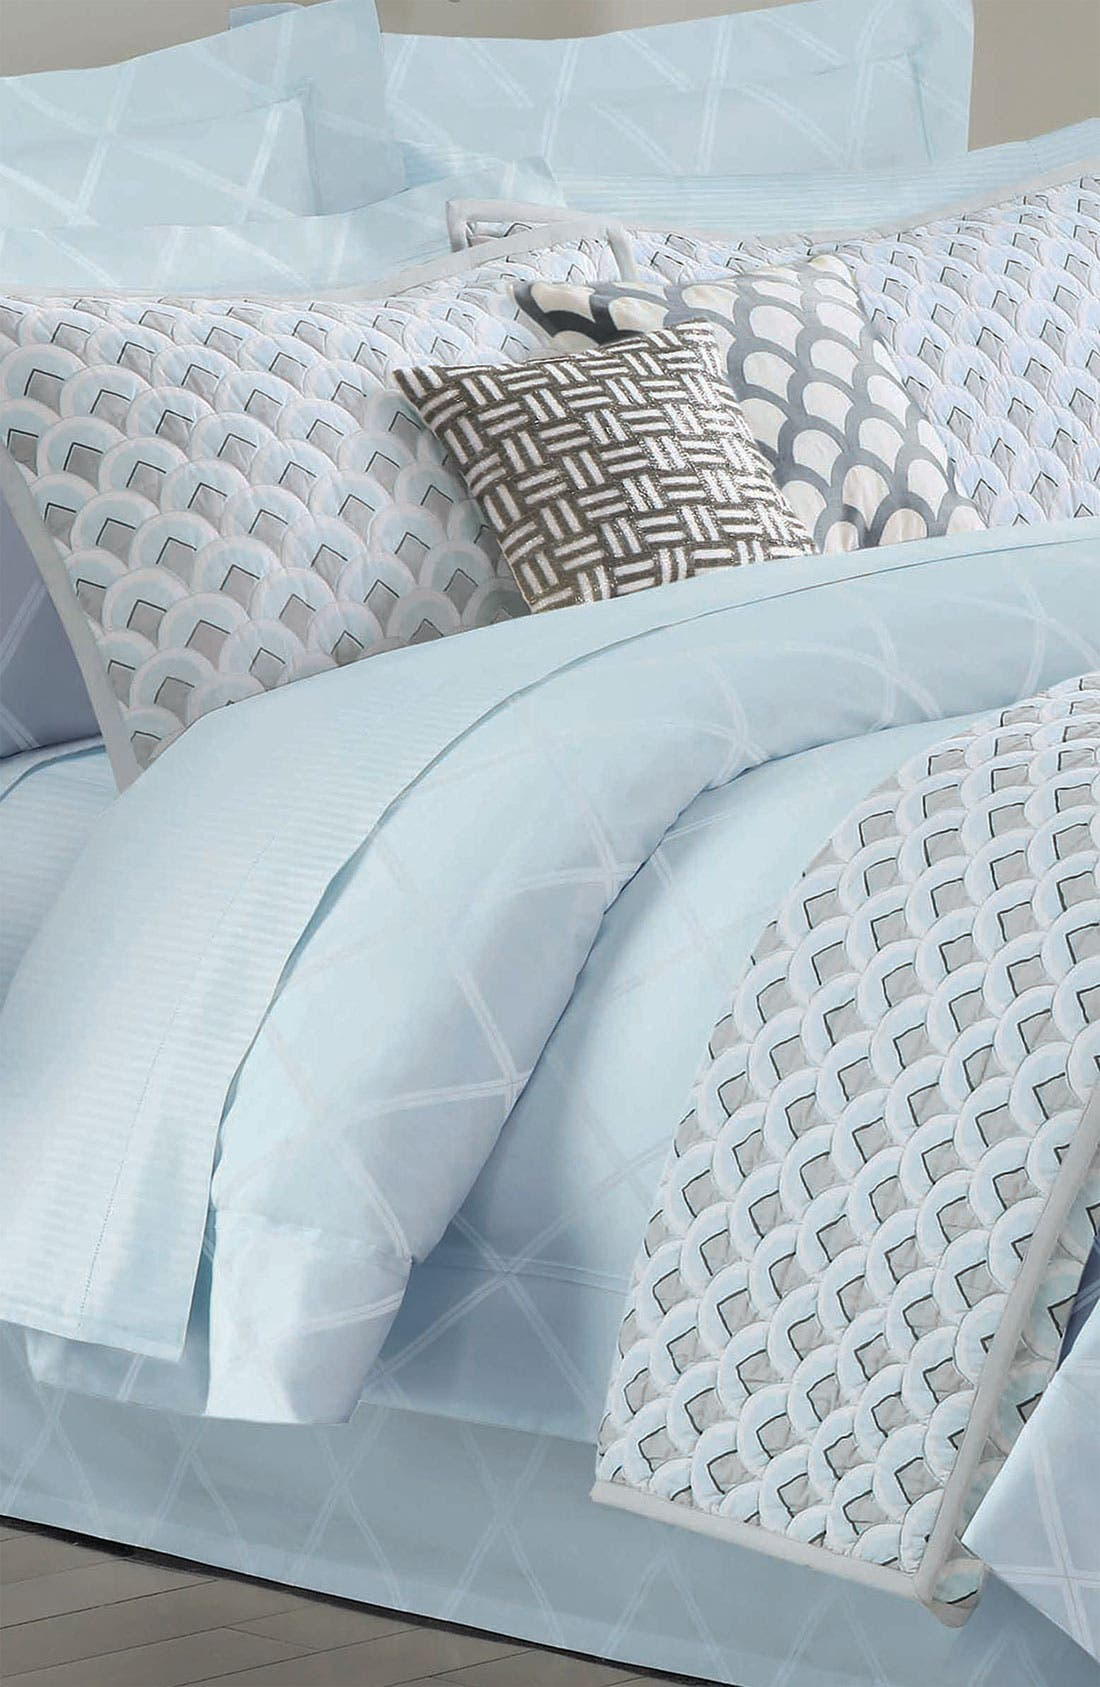 Alternate Image 1 Selected - kate spade new york 'magnolia park' 300 thread count duvet cover